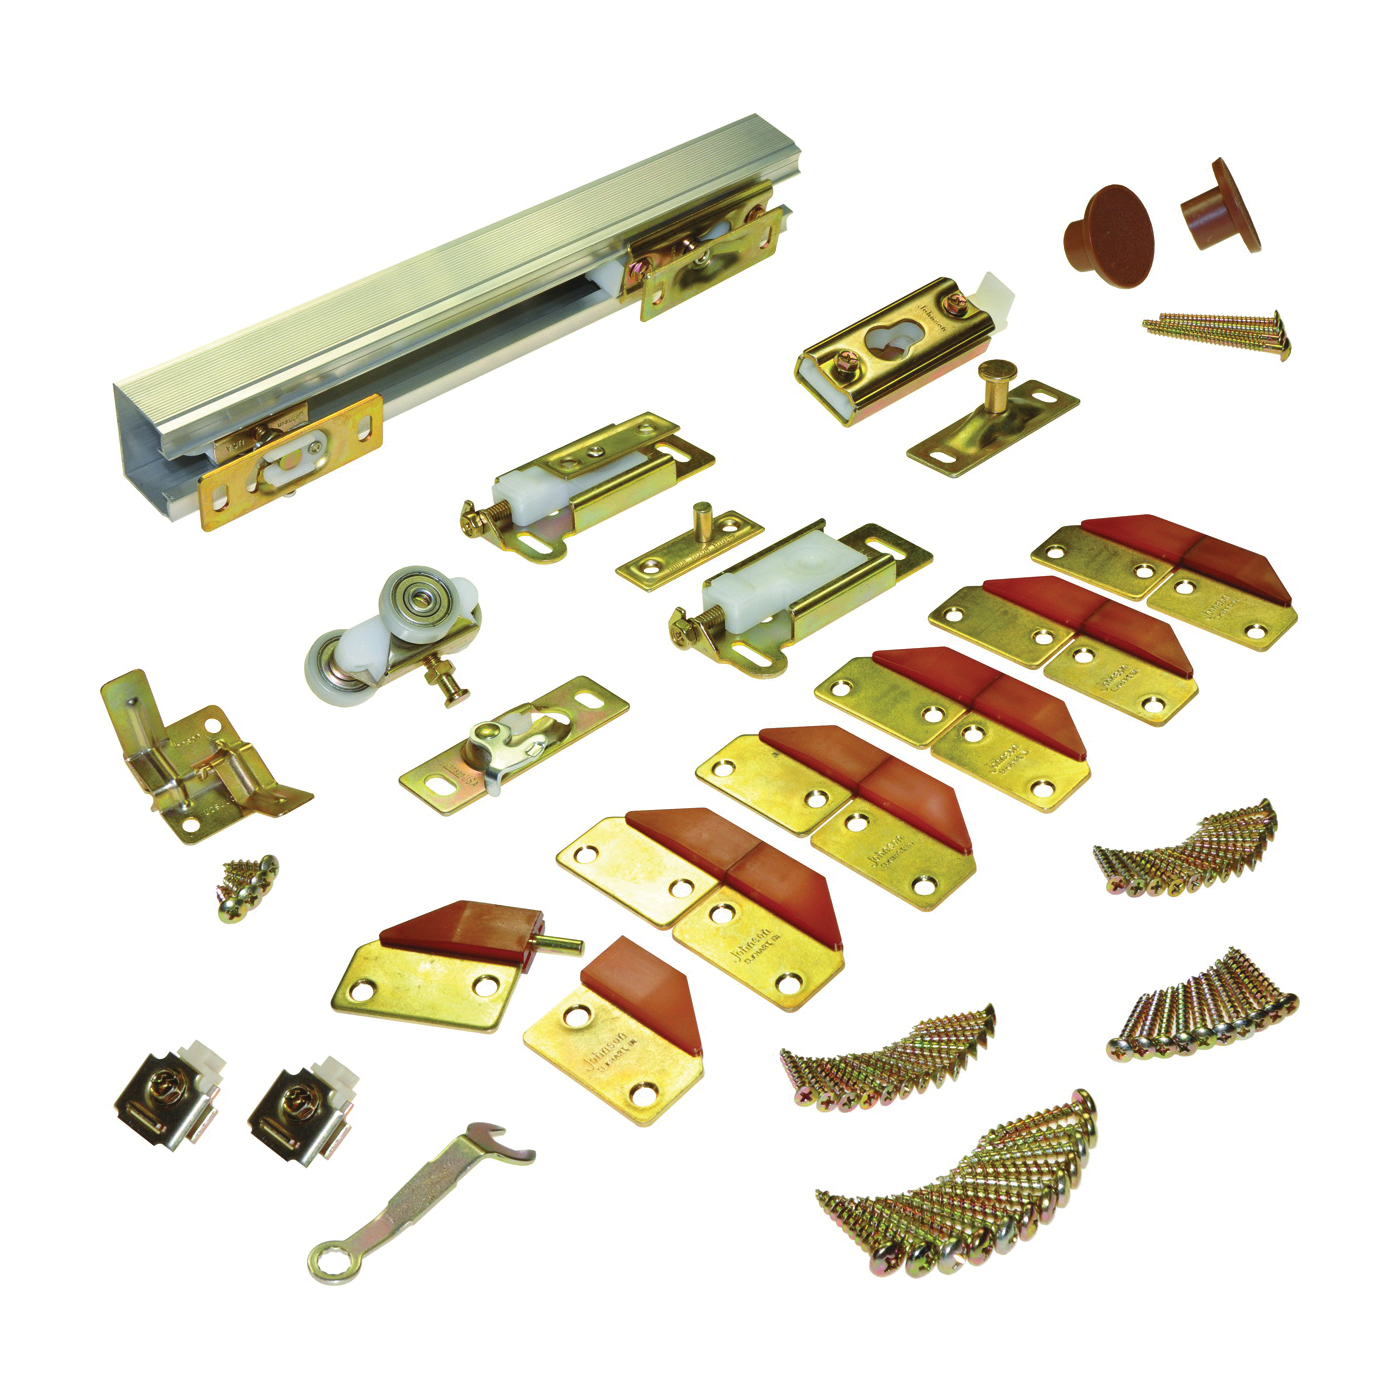 Picture of Johnson Hardware 100FD604 Panel Hardware Set, 1-1/8 to 1-3/4 in Thick Door, Top Mounting, For: 75 lb Bi-Fold Door